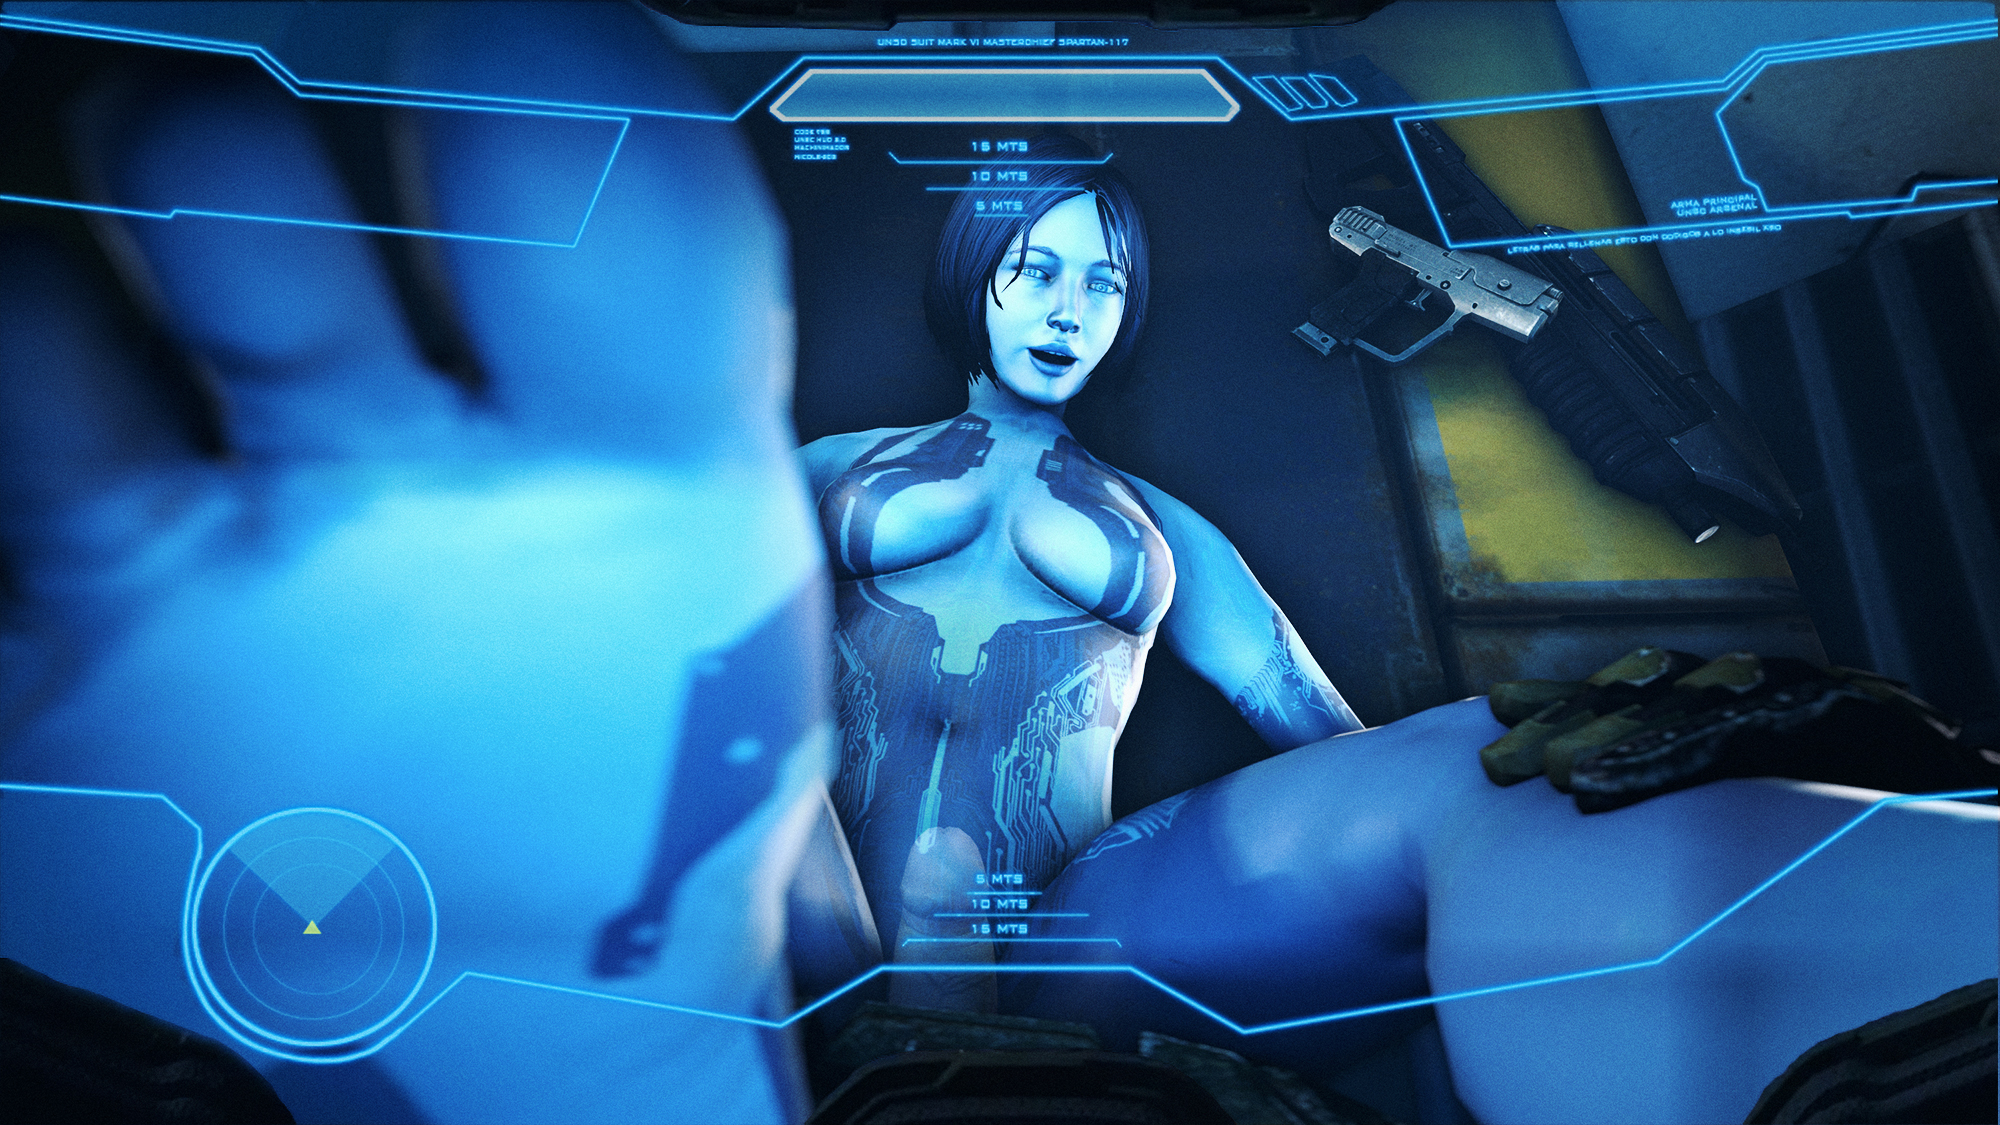 Cortana masturbation sexual image